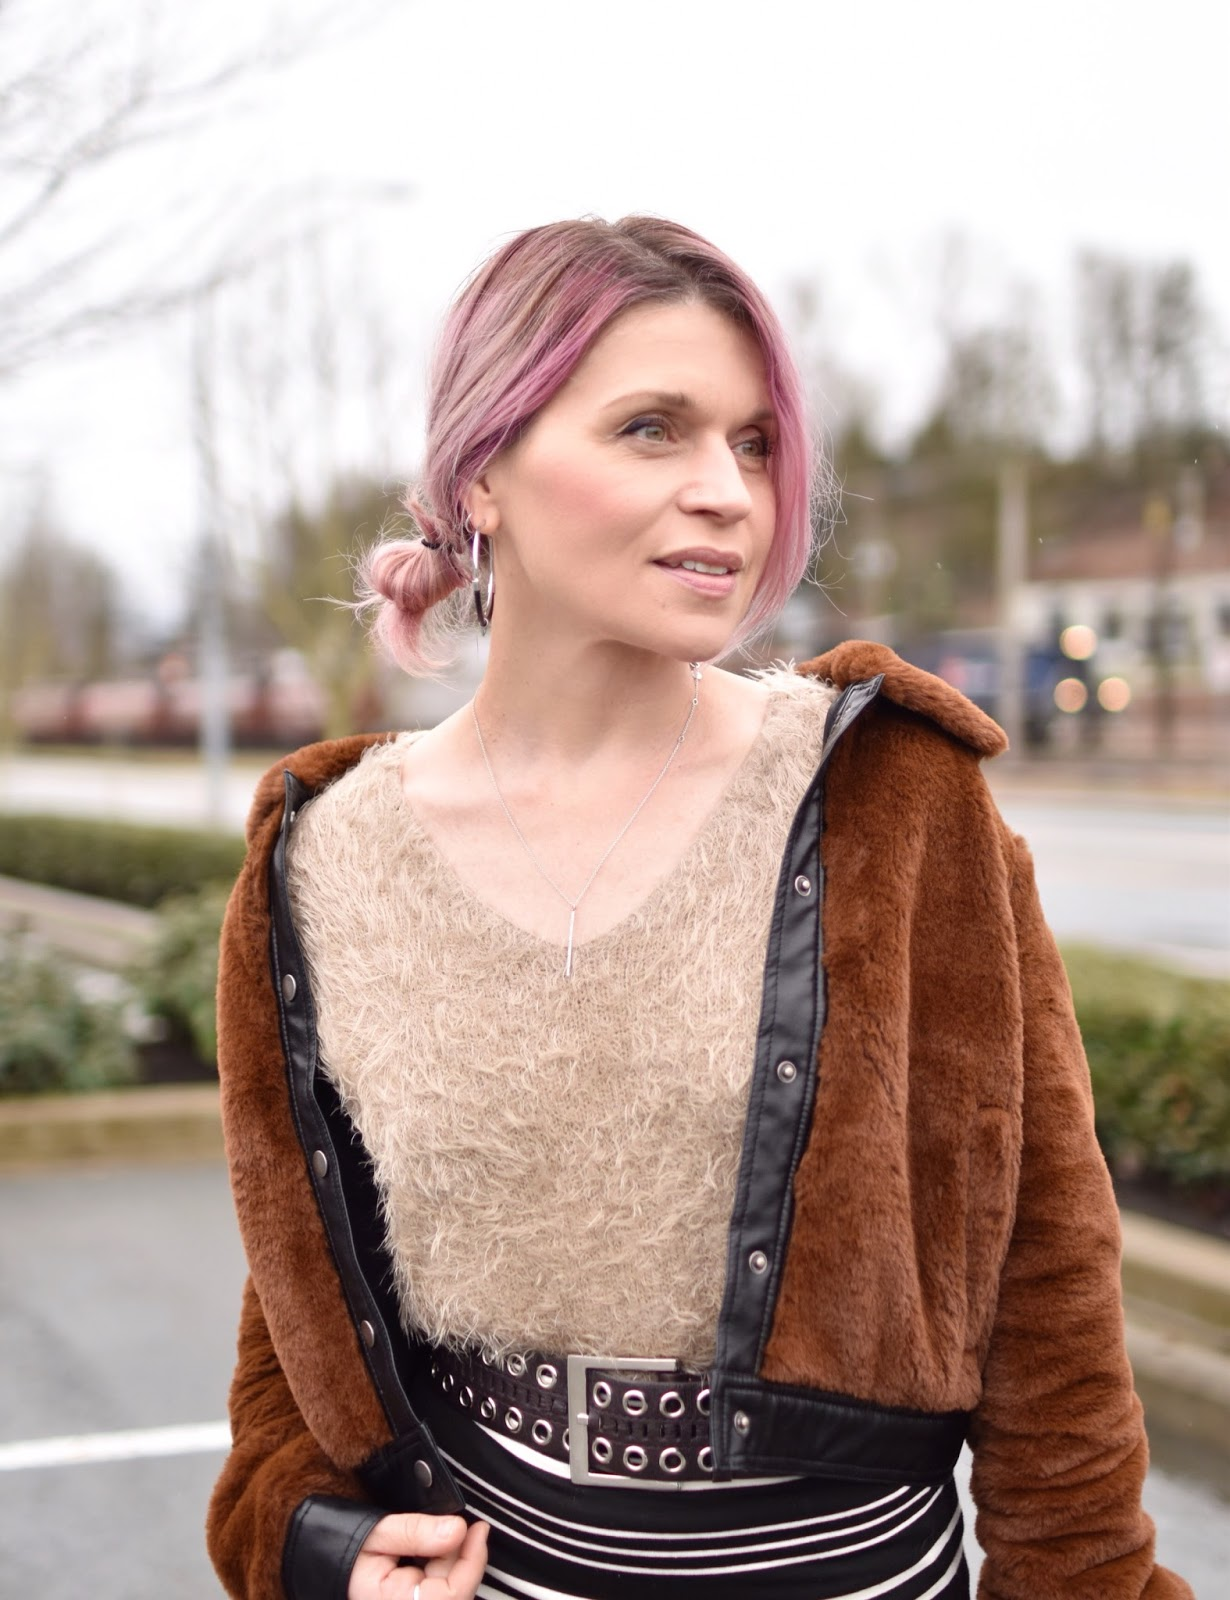 Monika Faulkner outfit inspiration - fuzzy sweater, teddybear bomber jacket, pink hair